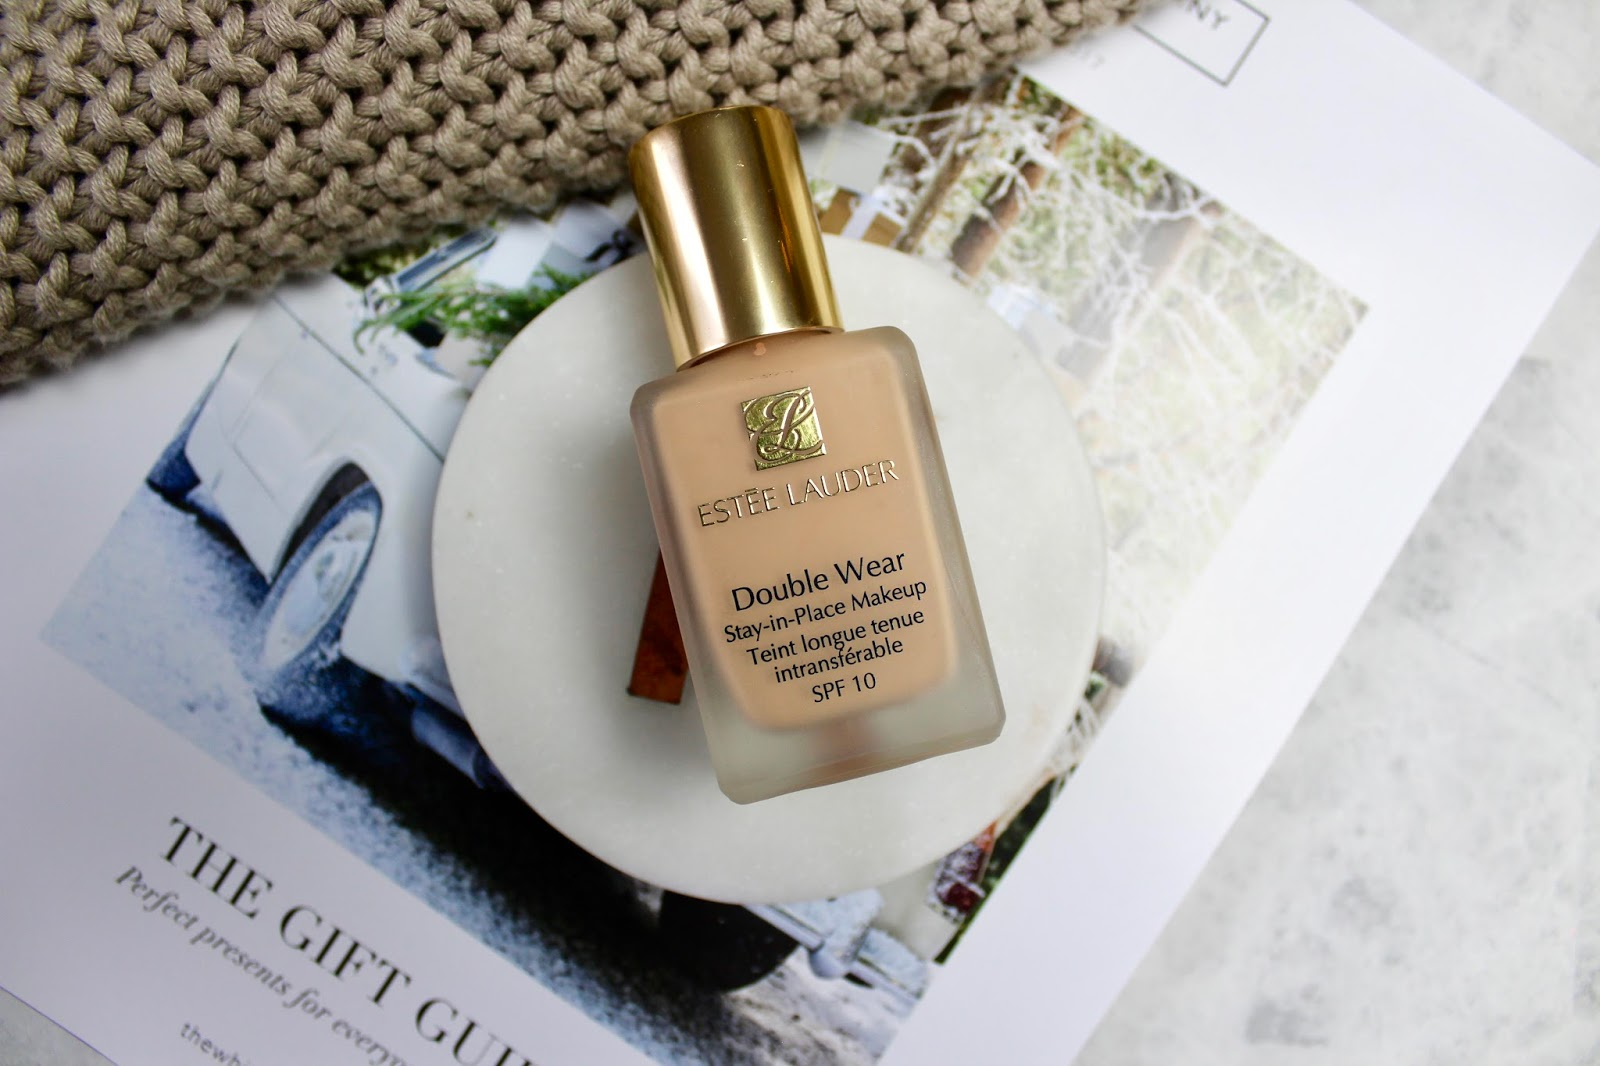 Estee Lauder - Double Wear Foundation